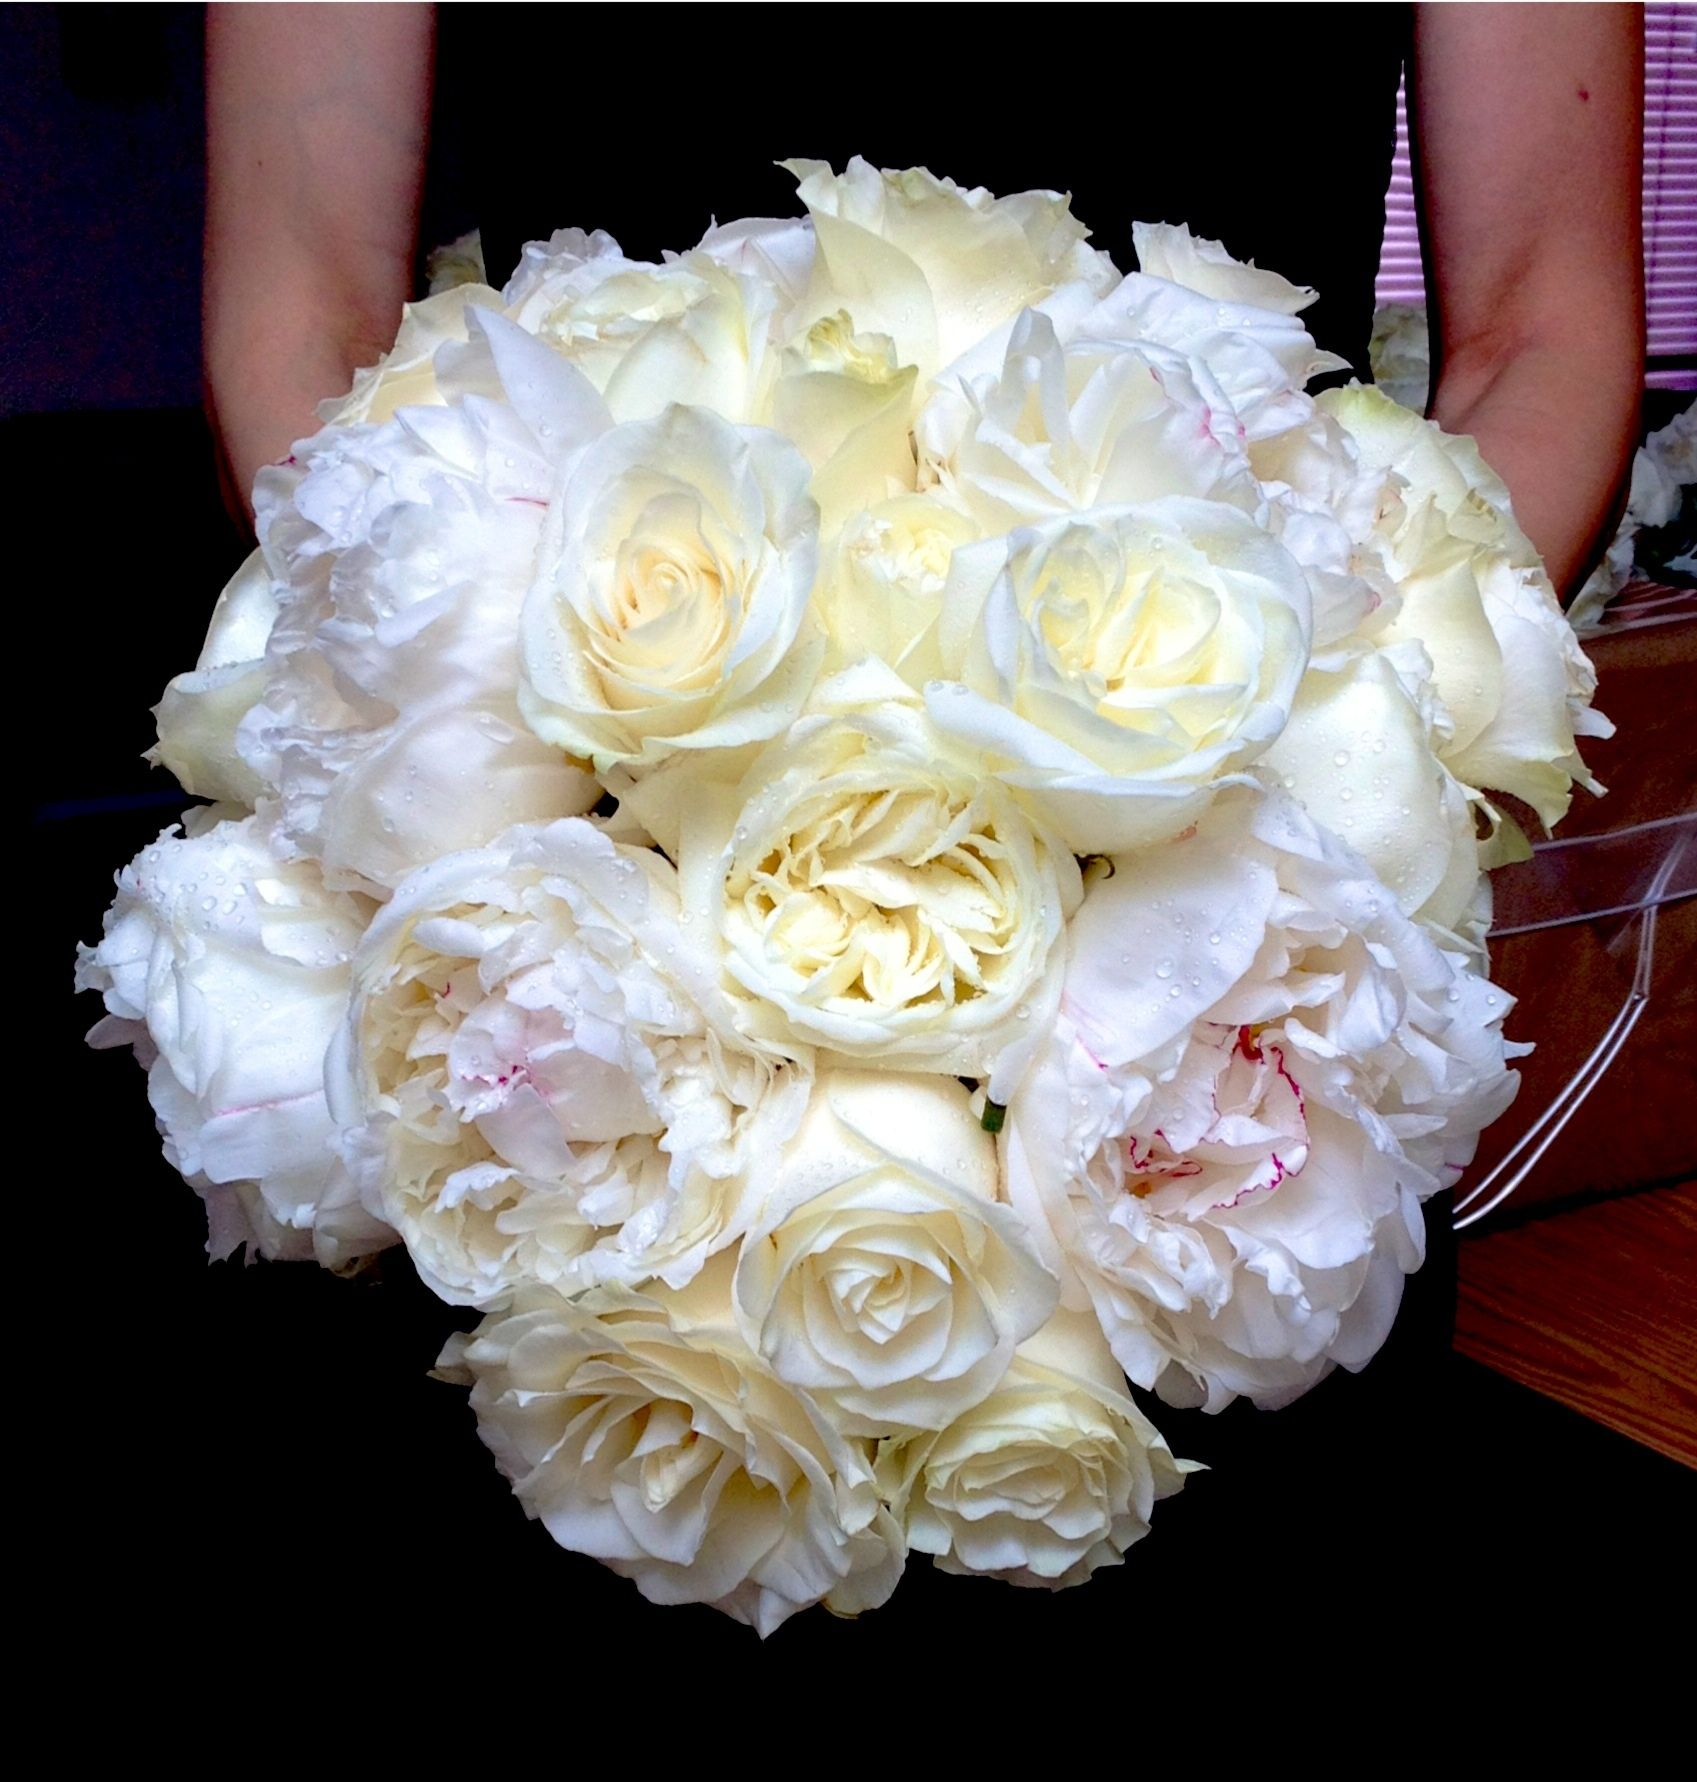 Flowers by shirley garden rose bouquets - Gorgeous Bridal Bouquet Of White Peonies Polo Roses Mondial Roses